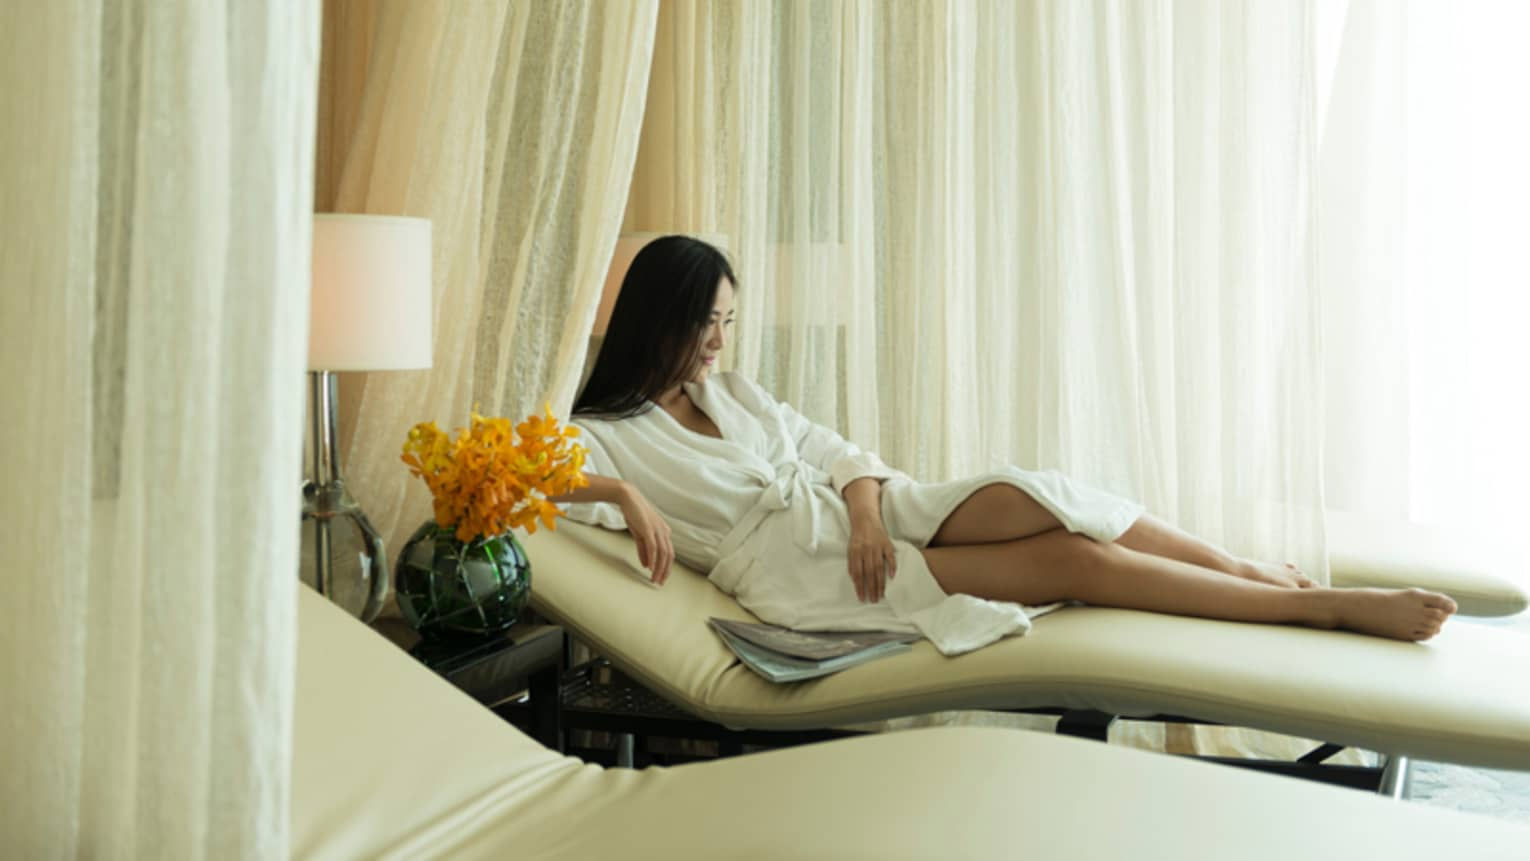 Woman wearing white bathrobe stretches out on white chaise lounge near white lamp, curtains